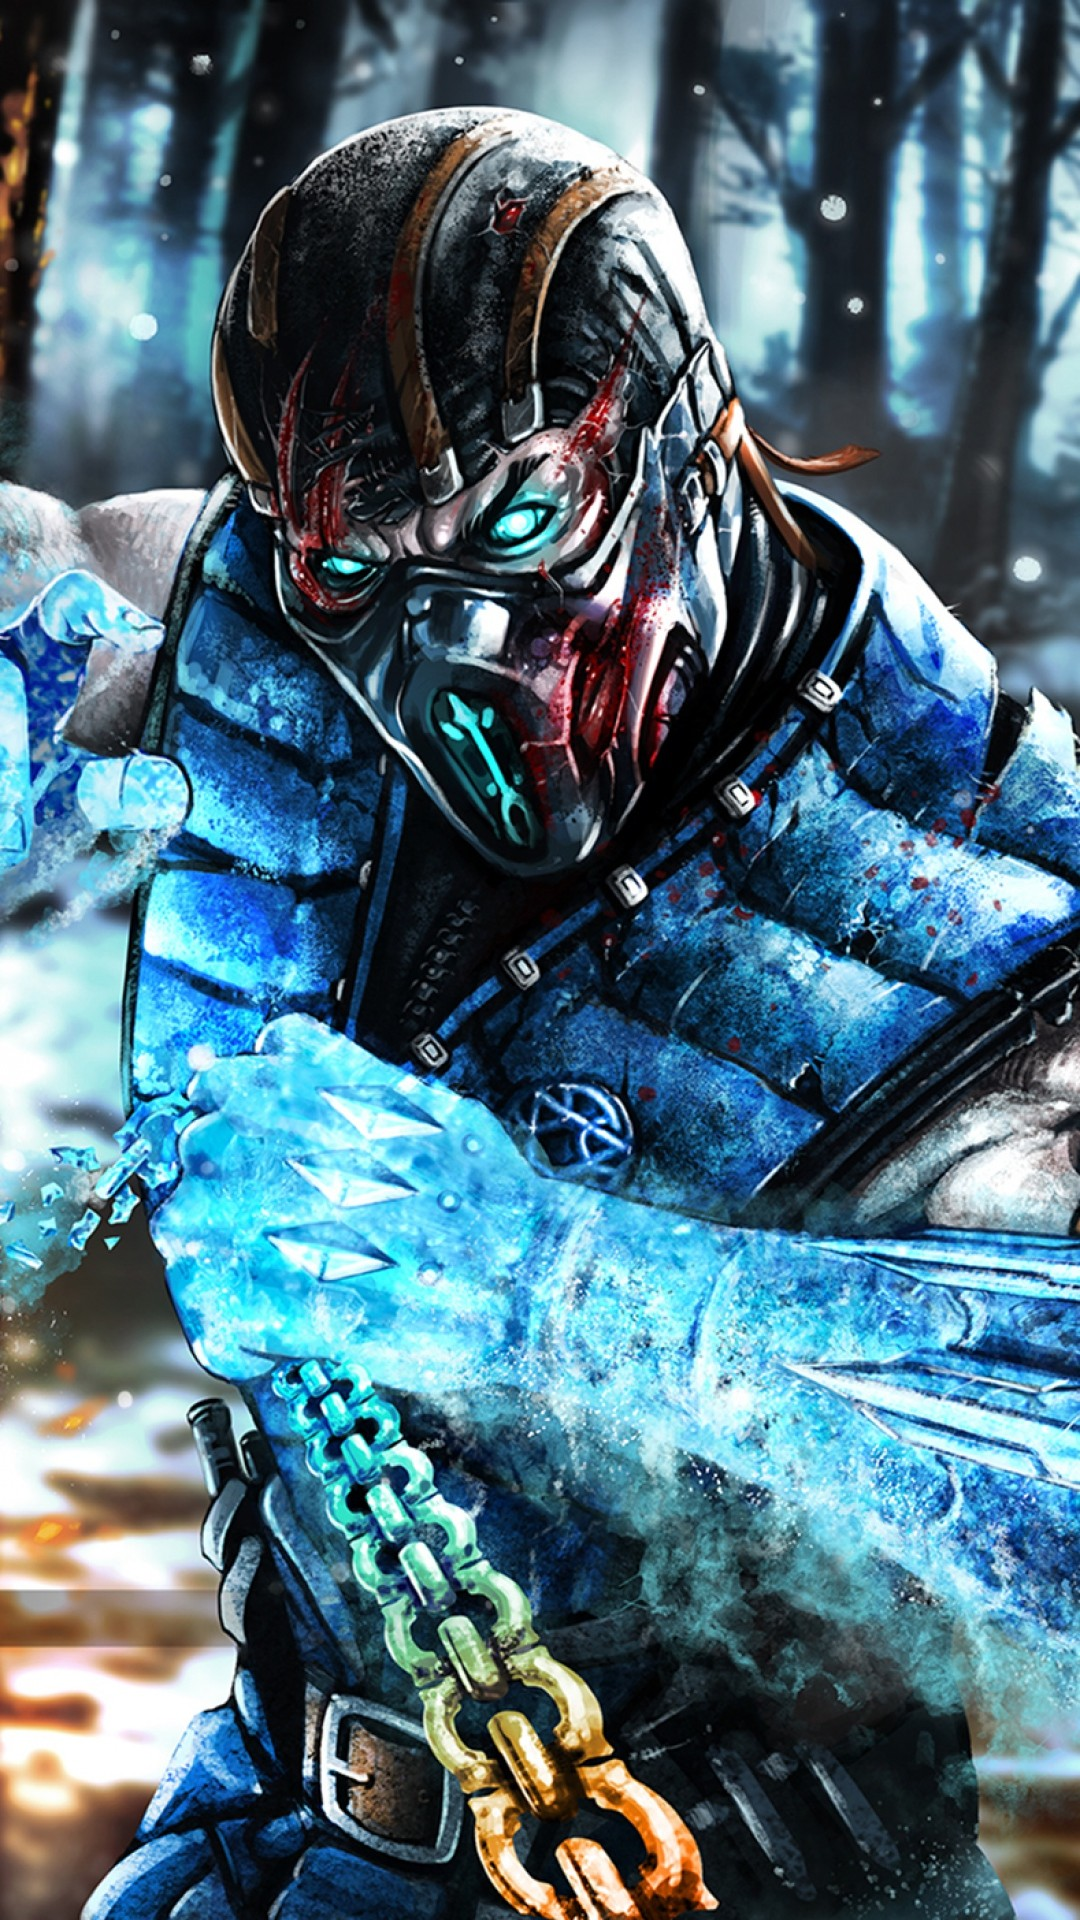 Mortal Kombat X iPhone Wallpaper (70+ images) - photo#7